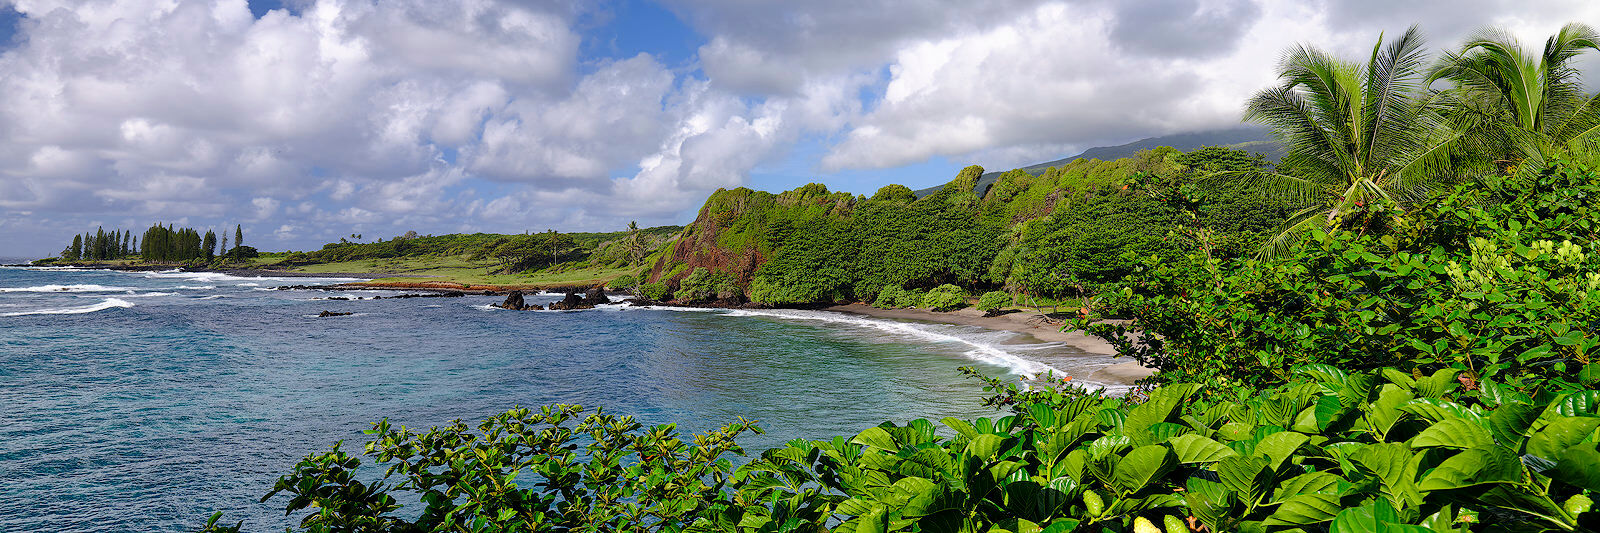 panoramic view of the picturesque Hamoa Beach near Hana on the island of Maui.  Fine art photograph by Andrew Shoemaker